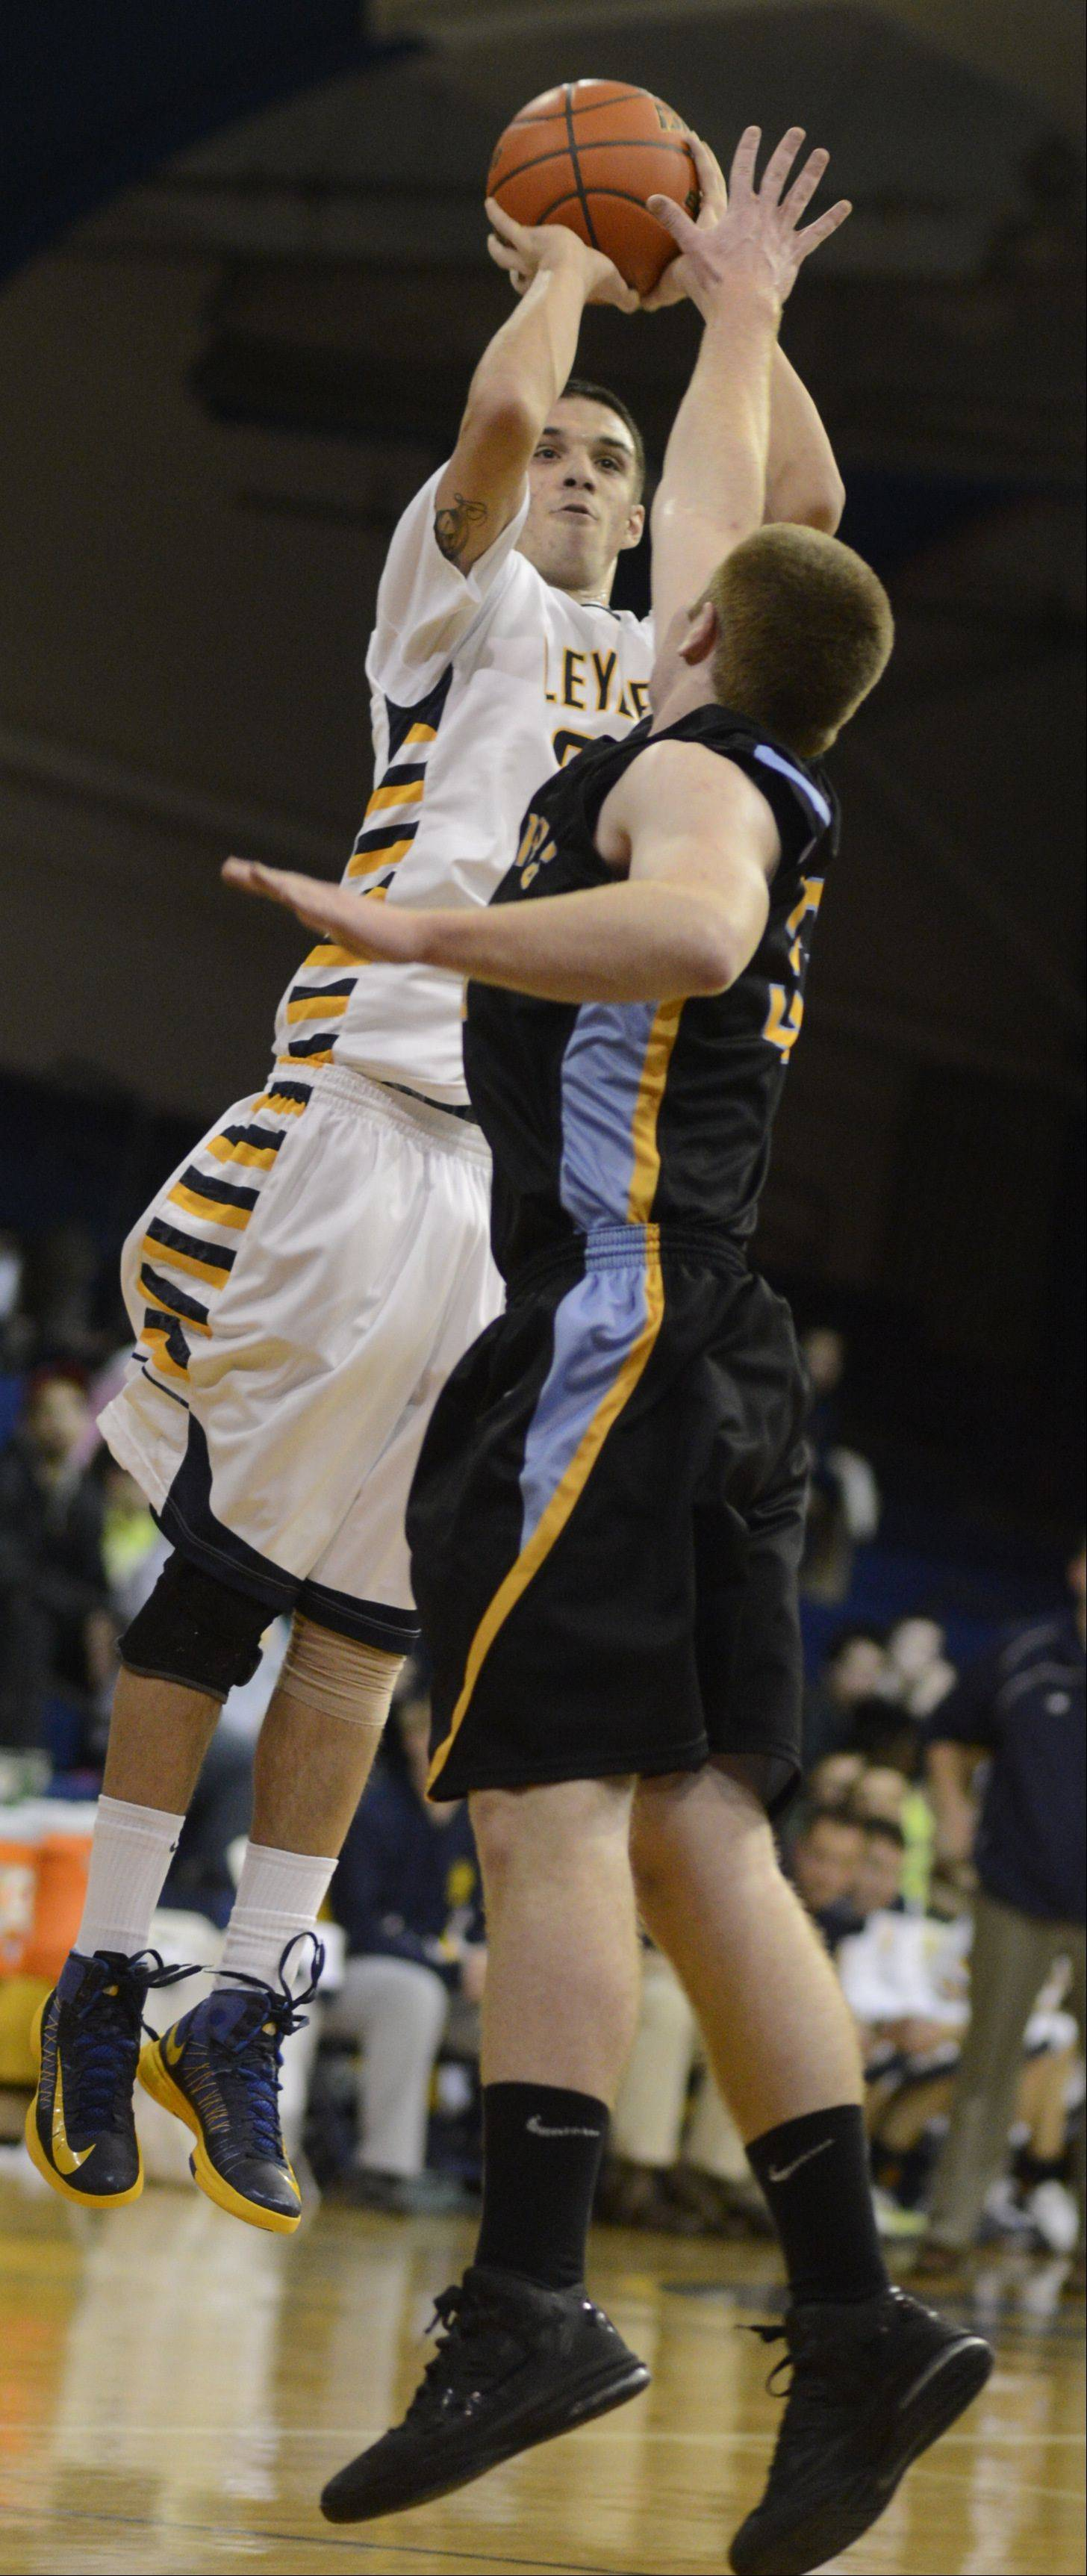 Images from the Leyden vs Maine West boys basketball game on Tuesday, February 5th, in Franklin Park.